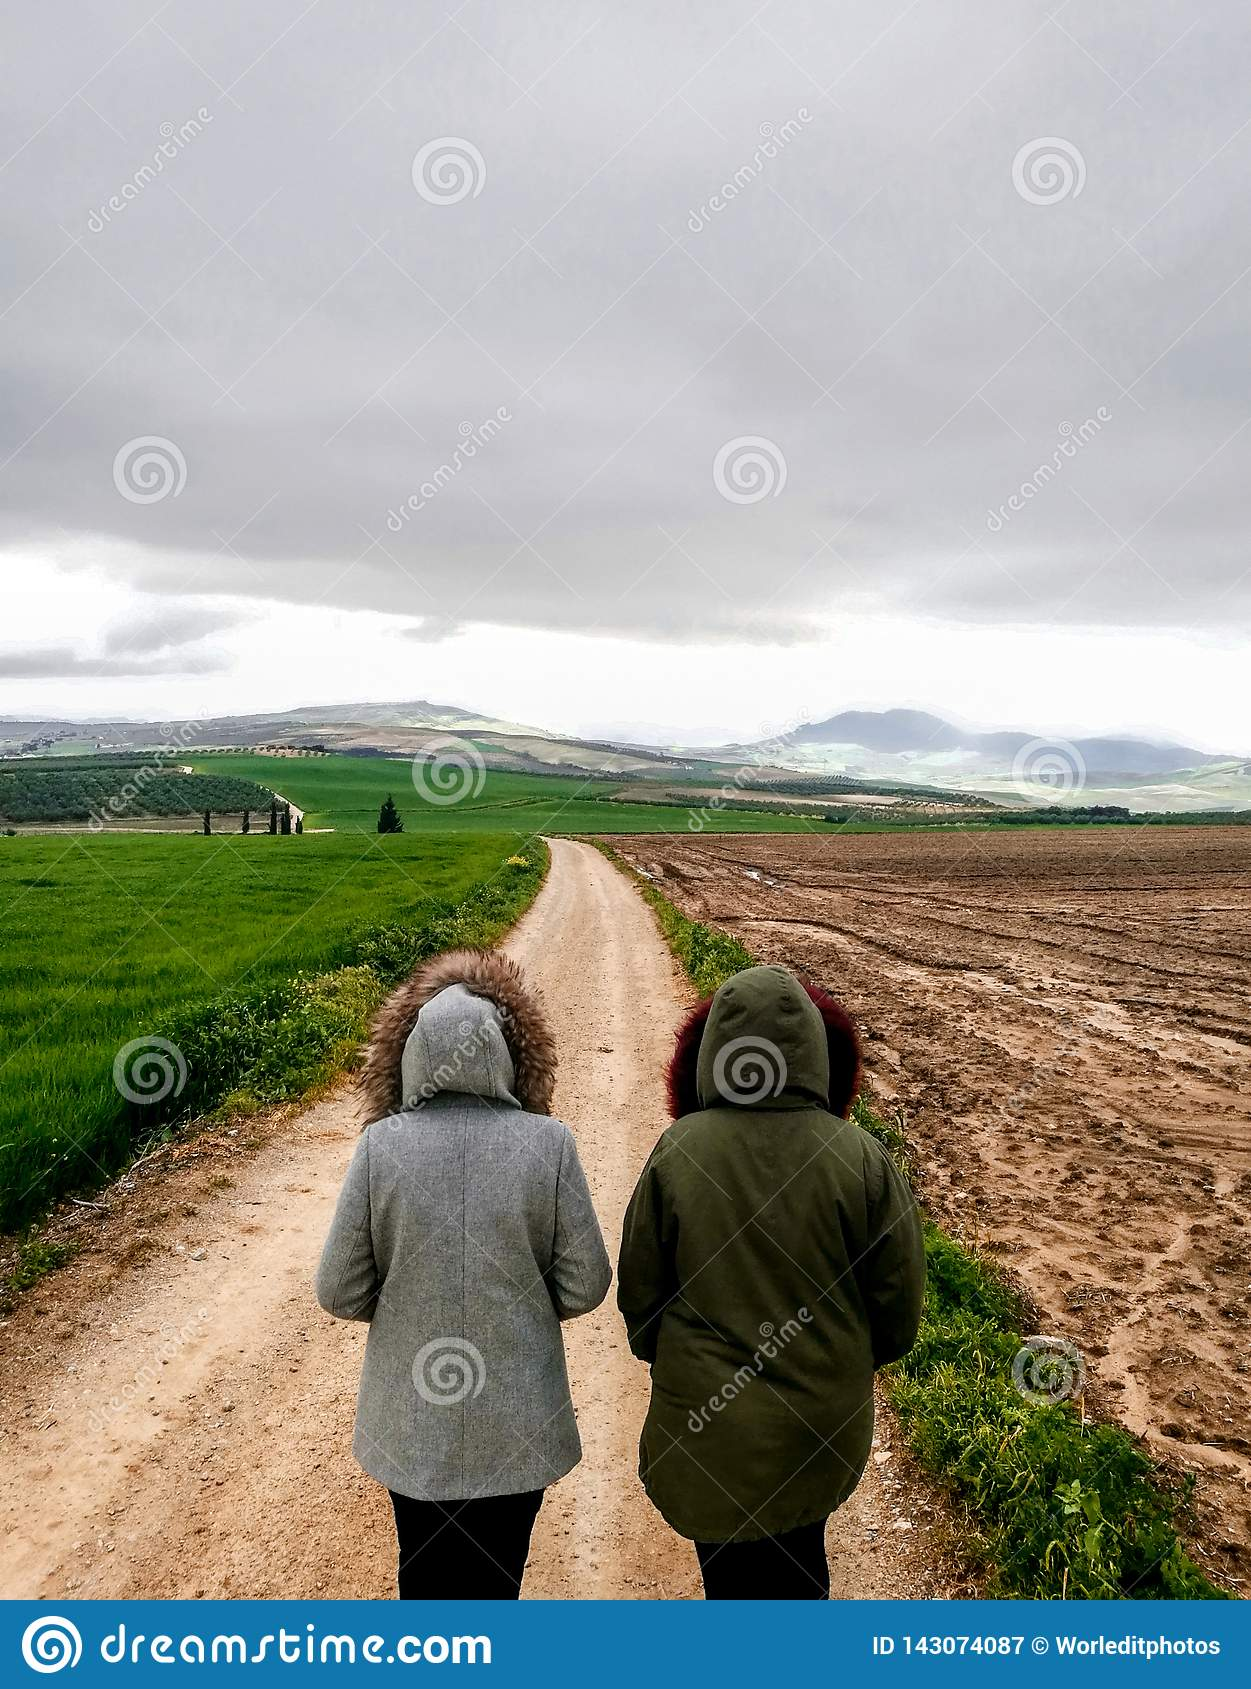 View of couple walking on a dirt road in beautiful parkland